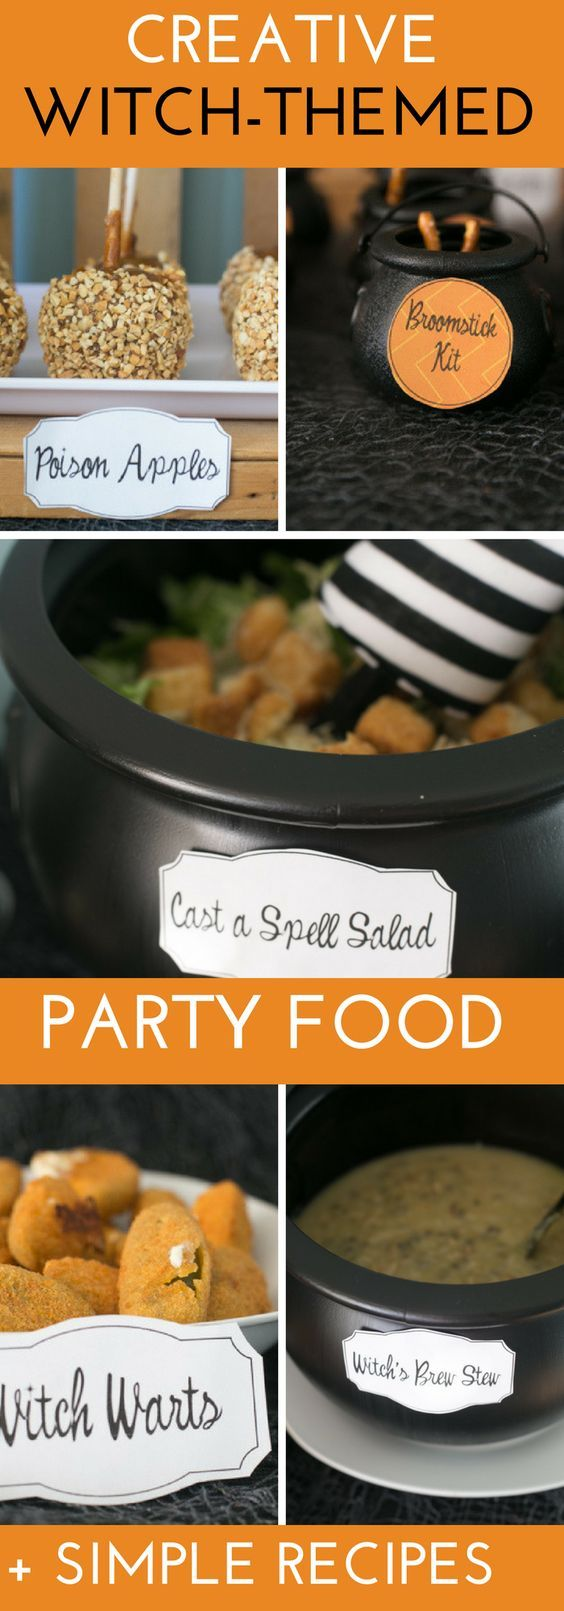 Creative & Cute Halloween Party Food Ideas for a Witch-themed Halloween party or Hocus Pocus Party- Simple witch-themed party food ideas and recipes